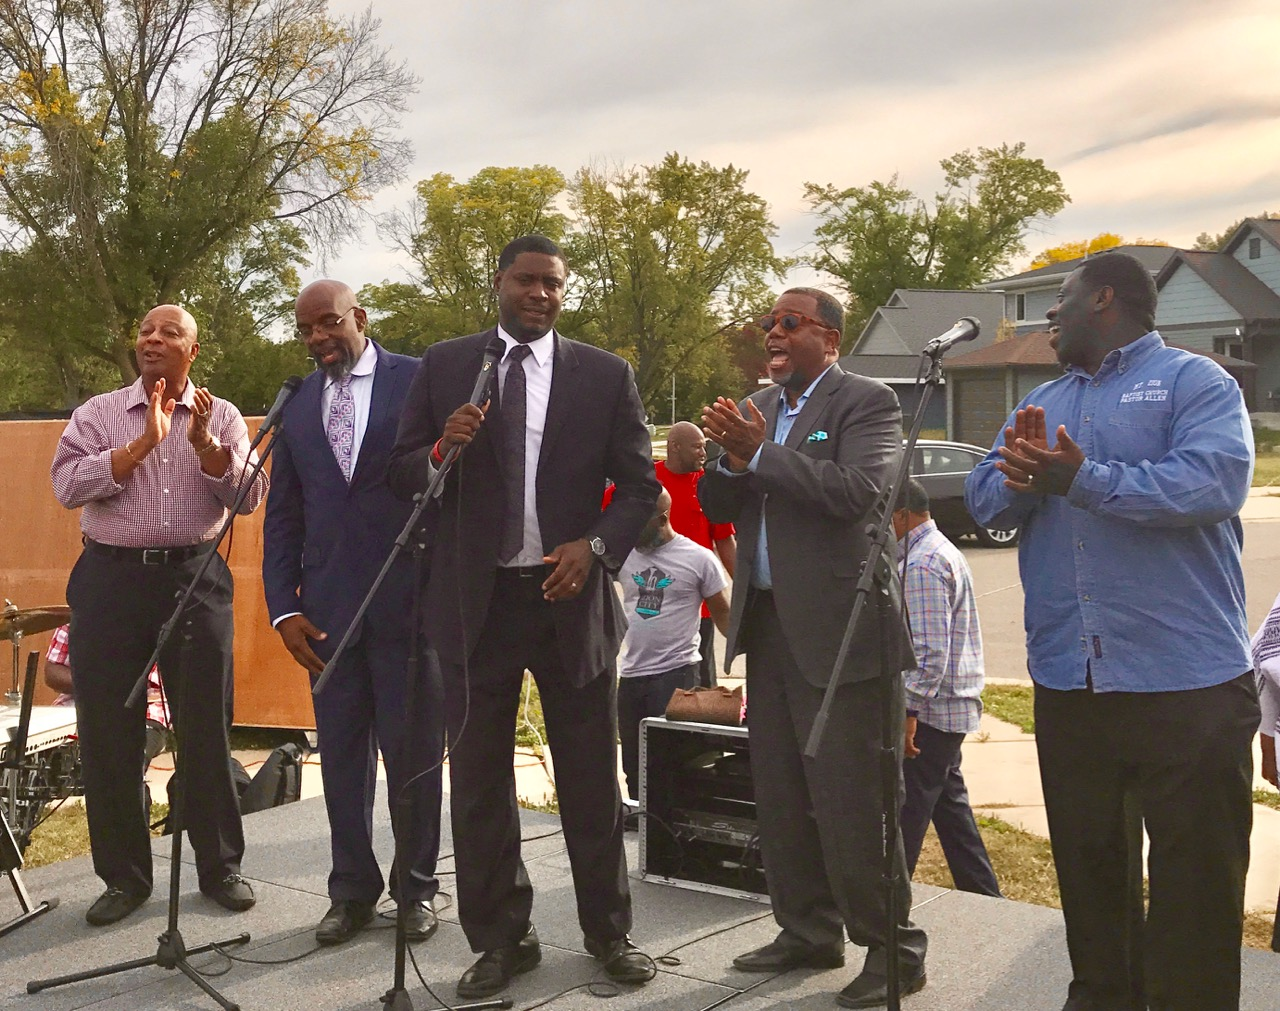 Rev. Marcus Allen (right) with other members of the African American Council of Churches at their Praise in the Park at Allied Drive in 2017.